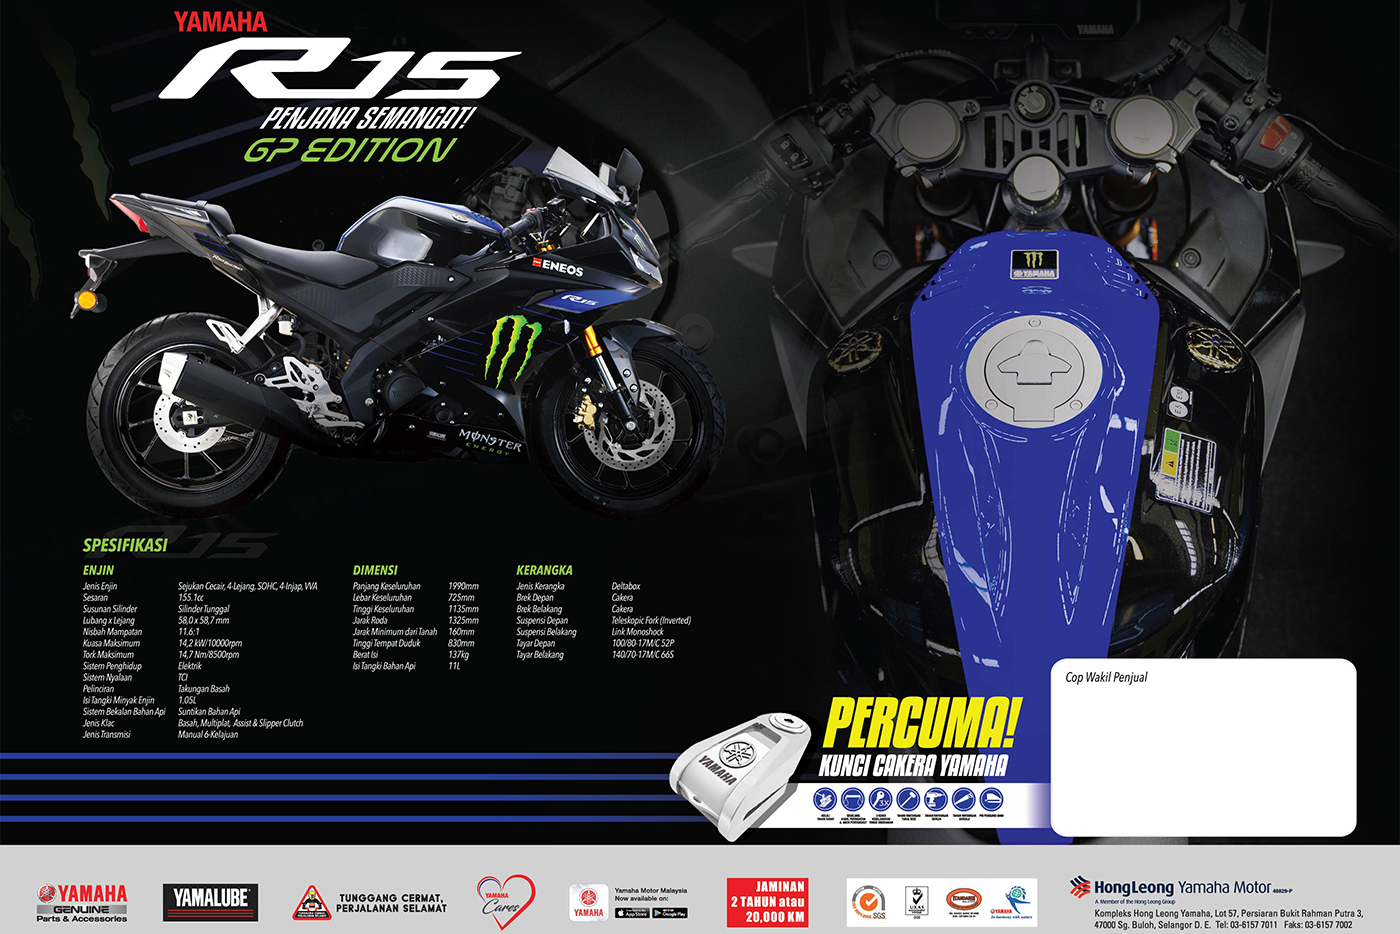 2019-yamaha-yzf-r15-monster-limited-edition-brochure-1.jpg